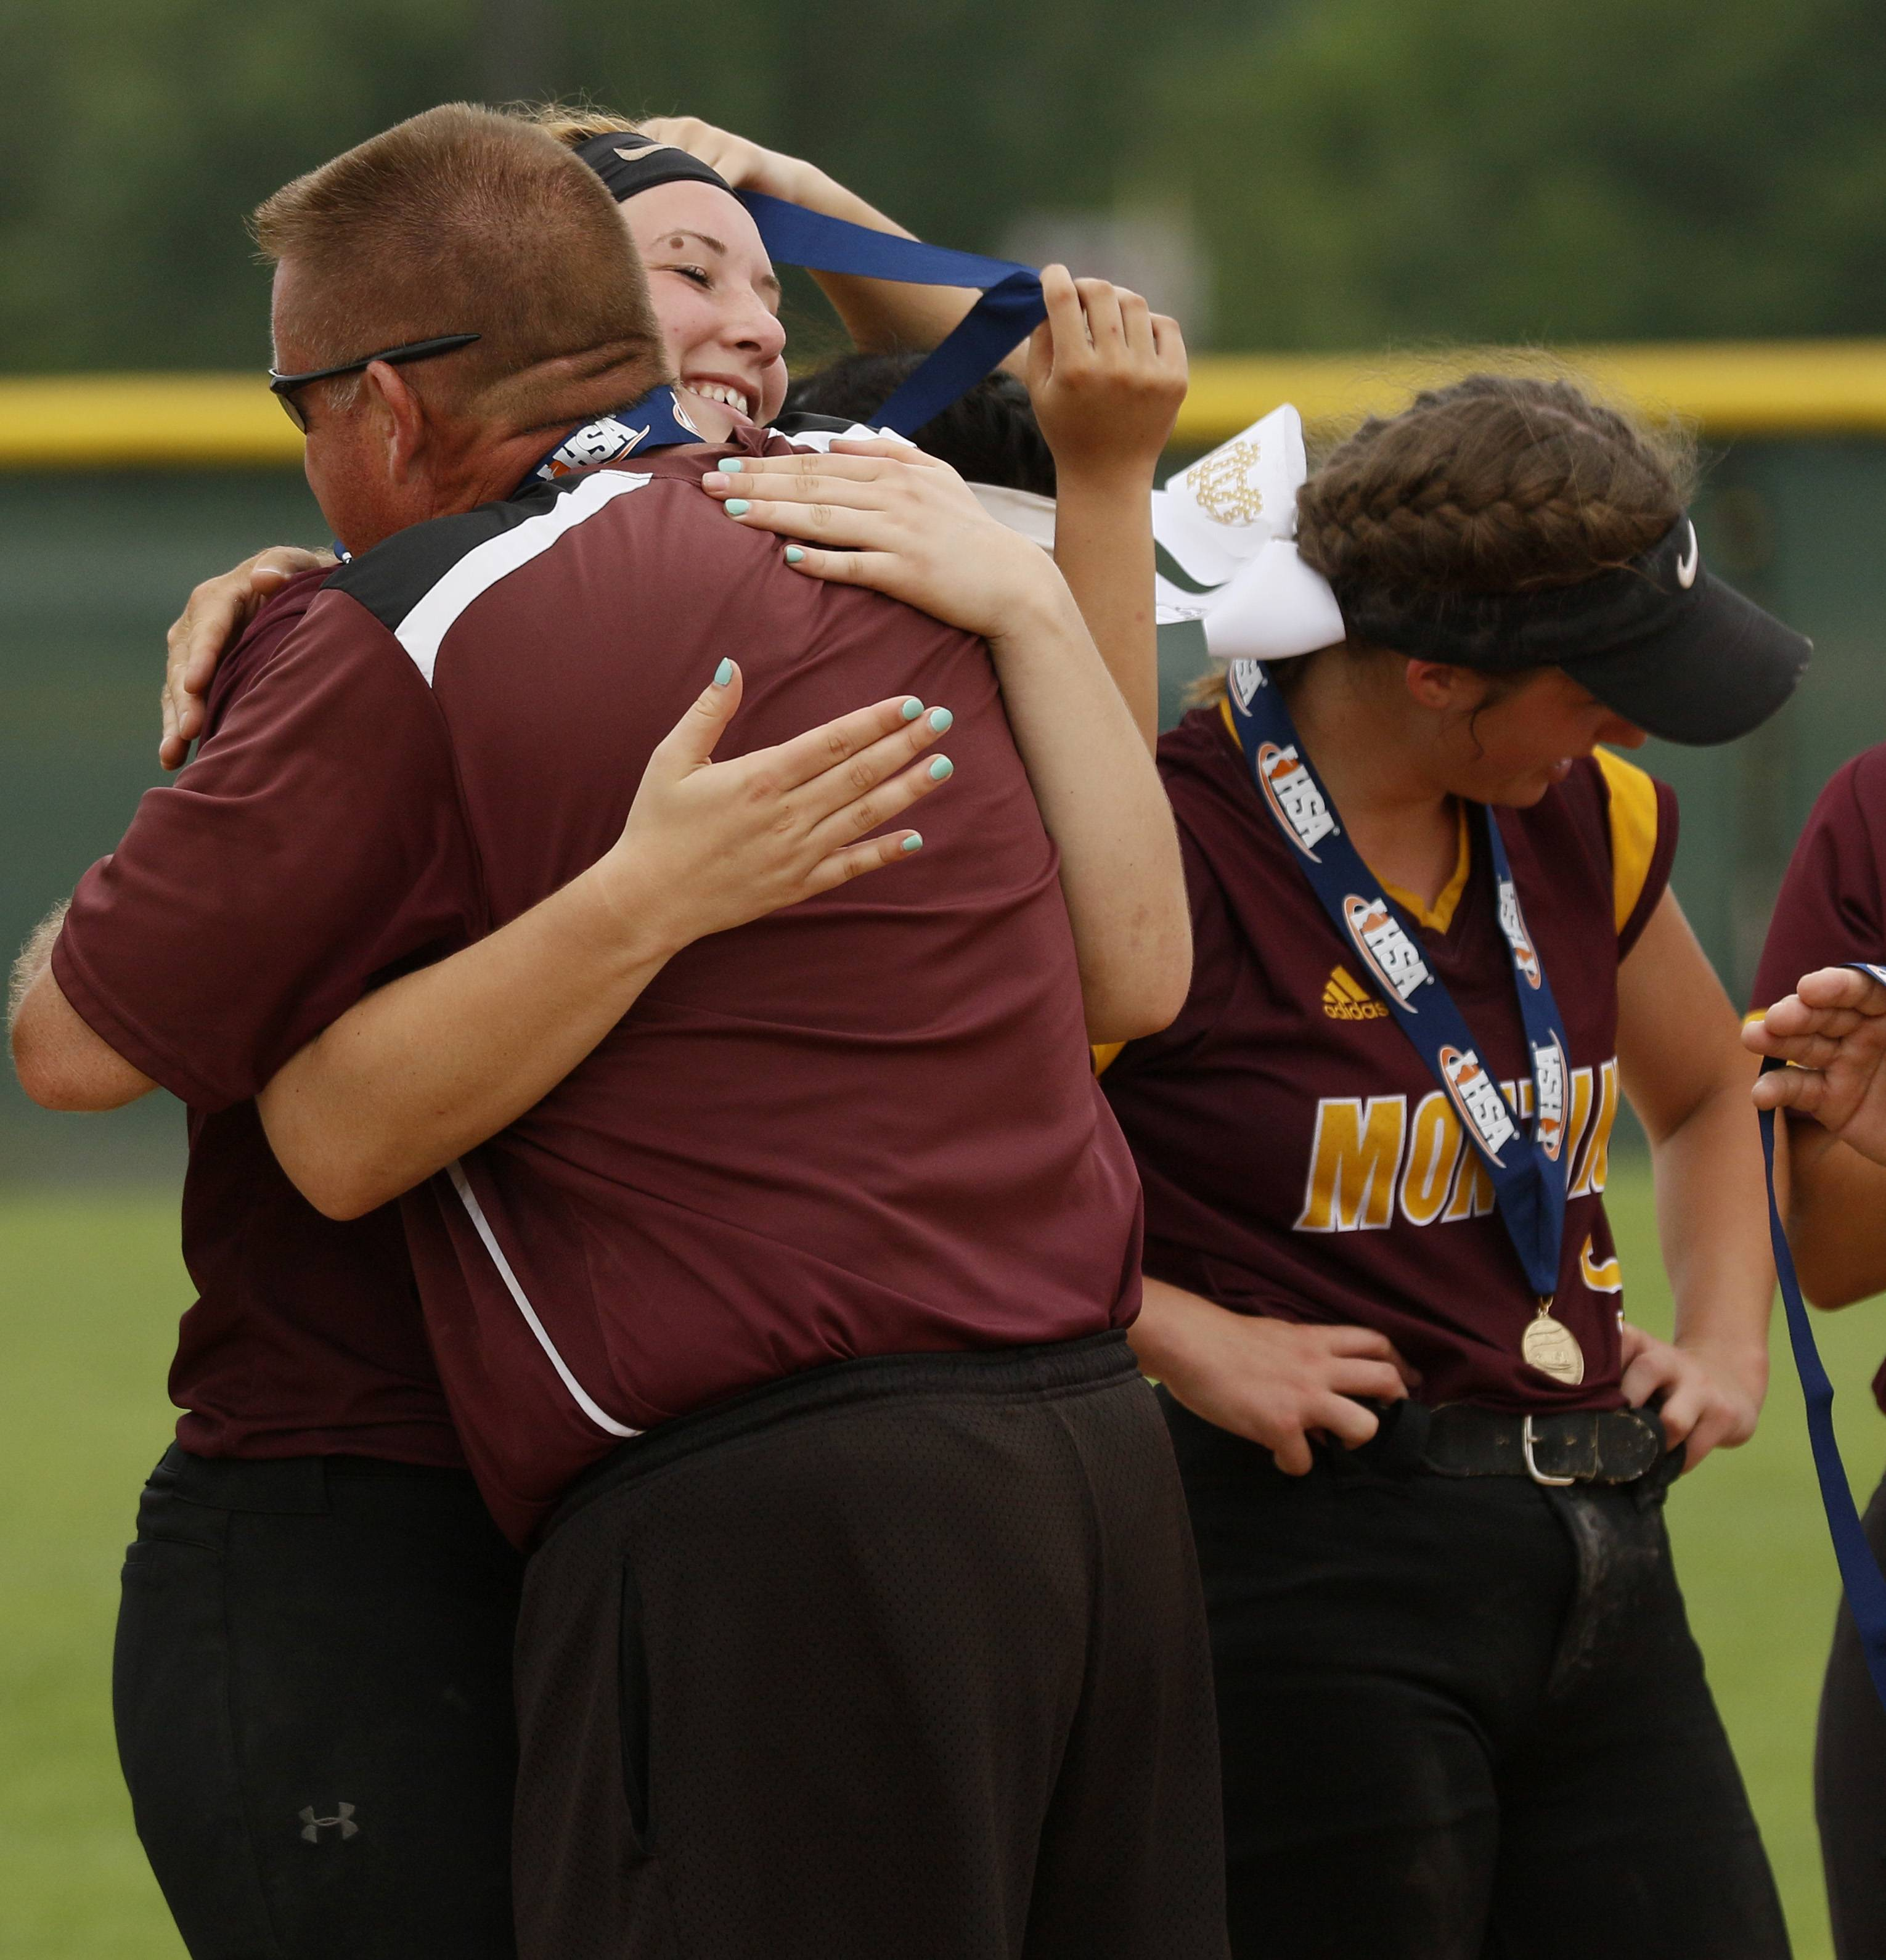 Montini Catholic players and coaches celebrate their epic 15-8 seventh inning comeback against Kaneland to win the IHSA Class 3A state softball championship.